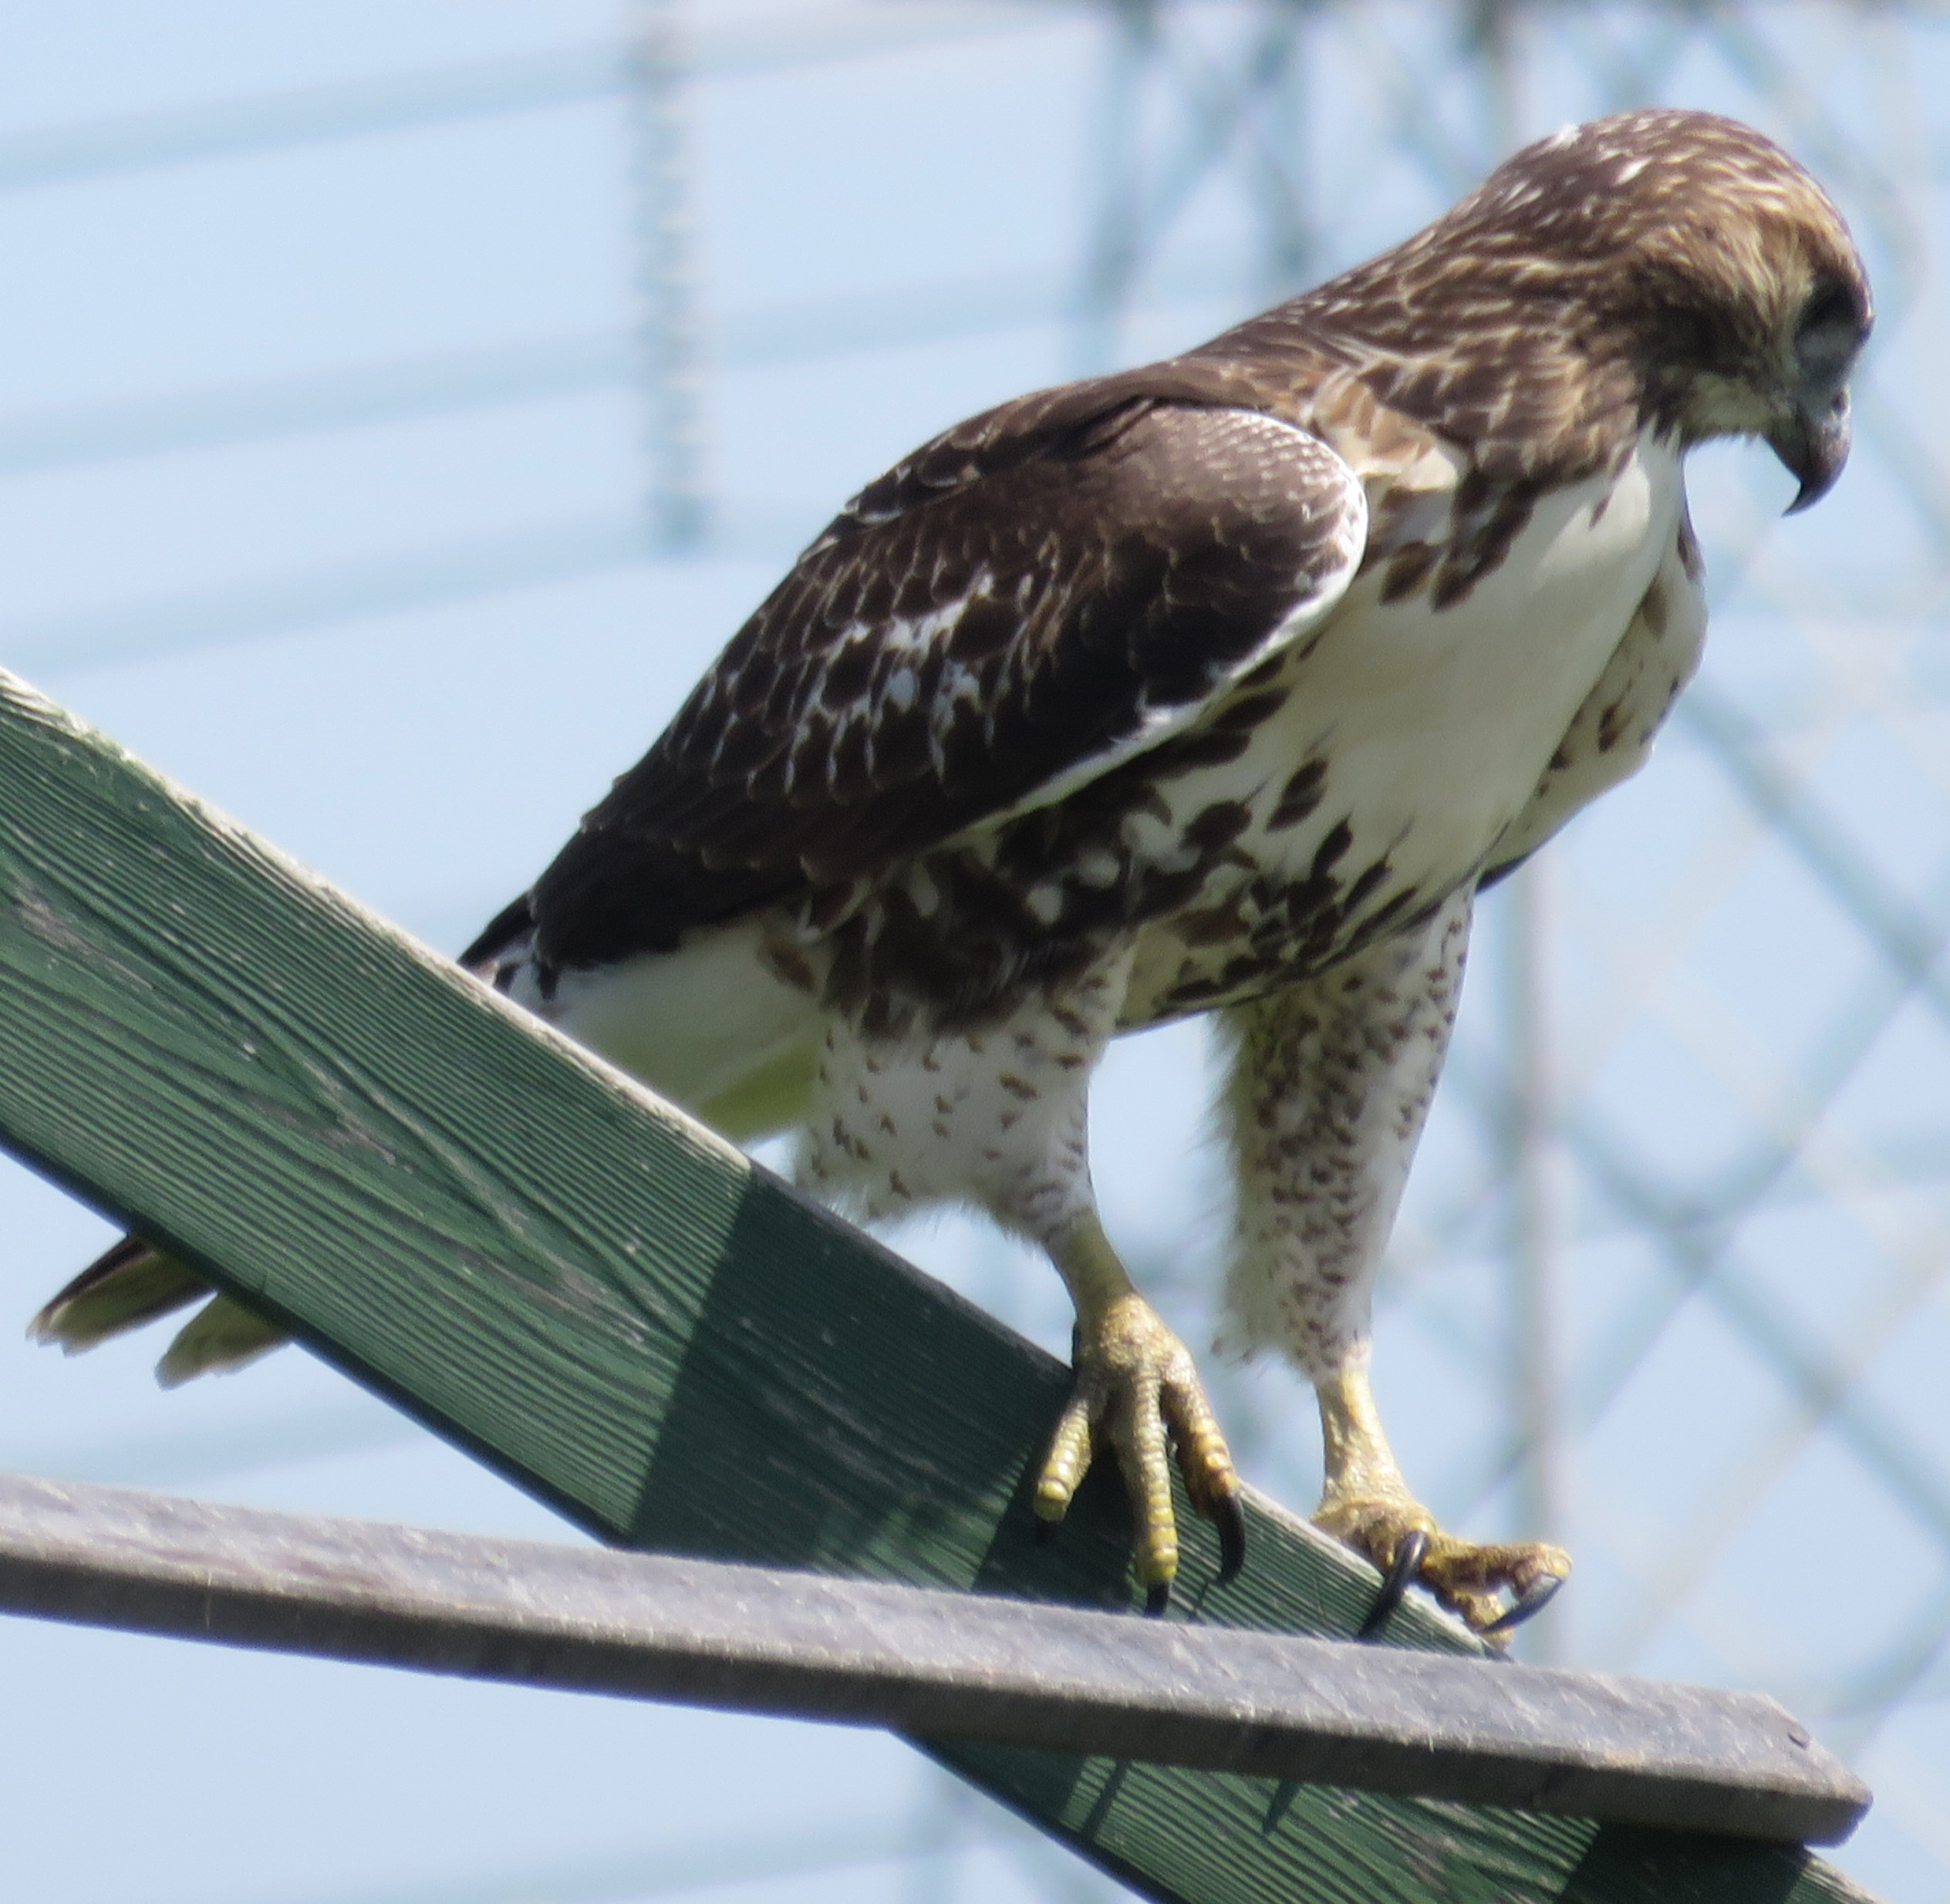 A hawk views the Fermilab site from a wooden beam near the Fermilab gardens. Photo: Barb Kristen, PPD